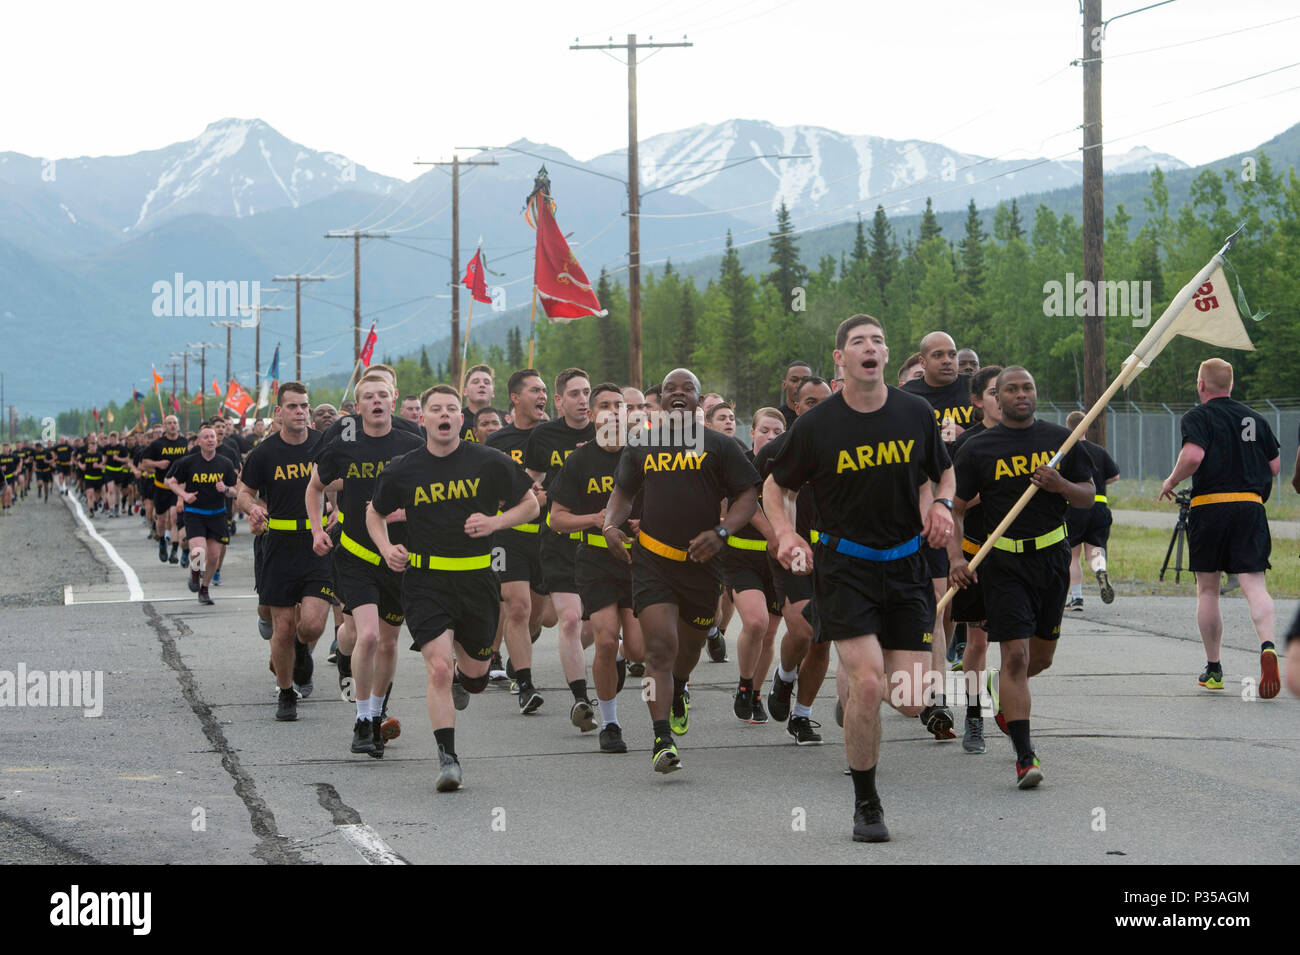 Soldiers assigned to the various U.S. Army Alaska units participate in a large formation run celebrating the Army's 243rd birthday at Joint Base Elmendorf-Richardson, Alaska, June 13, 2018. U.S. Army Alaska Commanding General, Maj. Gen. Mark J. O'Neil and Command Sgt. Maj. Jeffrey R. Dillingham led the Soldiers of USARAK on the run and afterwards a birthday cake cutting ceremony. (U.S. Air Force photo by Alejandro Peña) - Stock Image